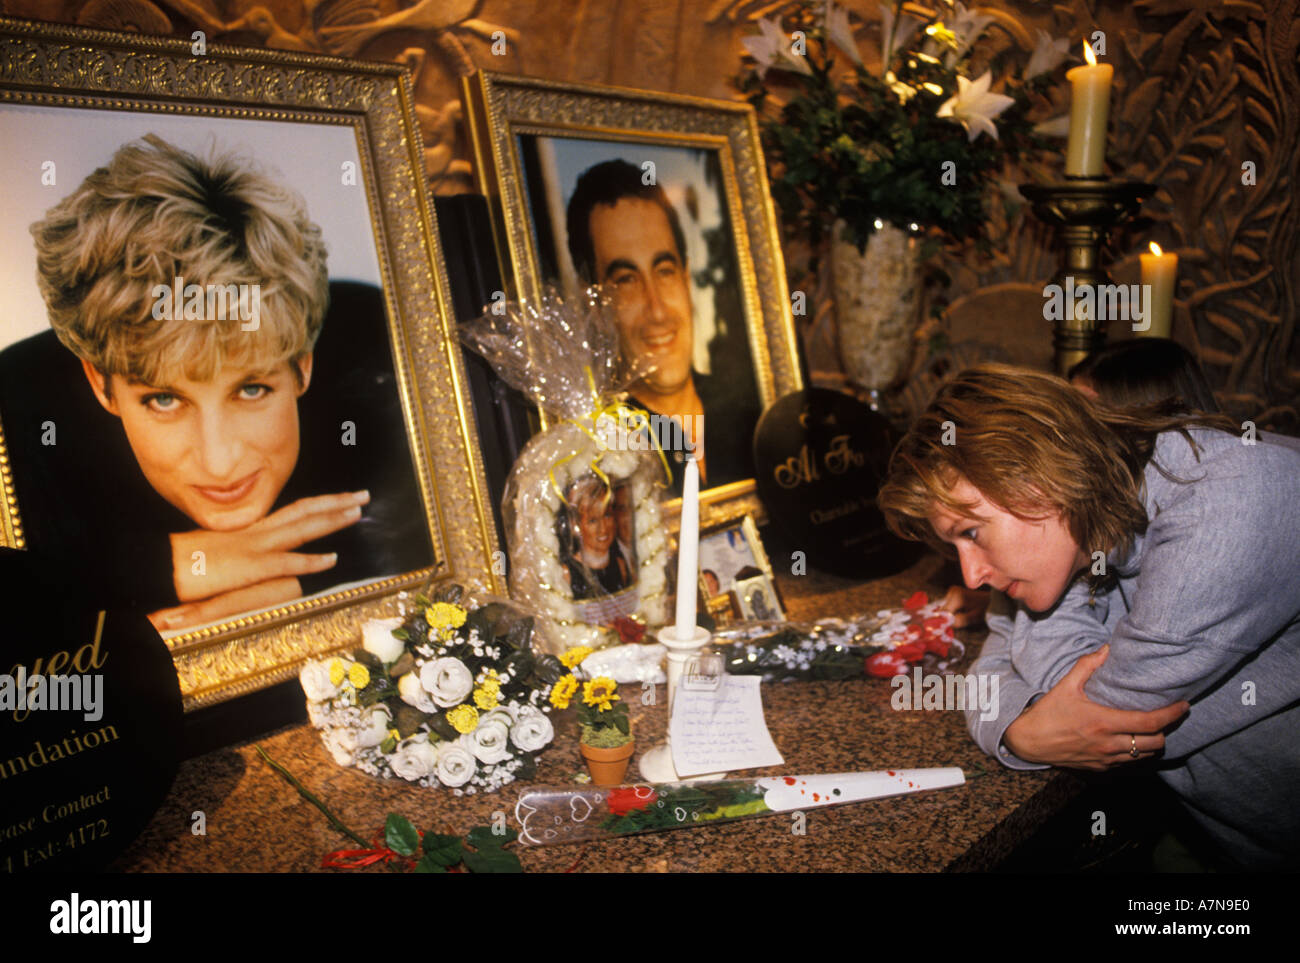 Princess Diana of Wales and Dodi Fayed memorial in Harrods